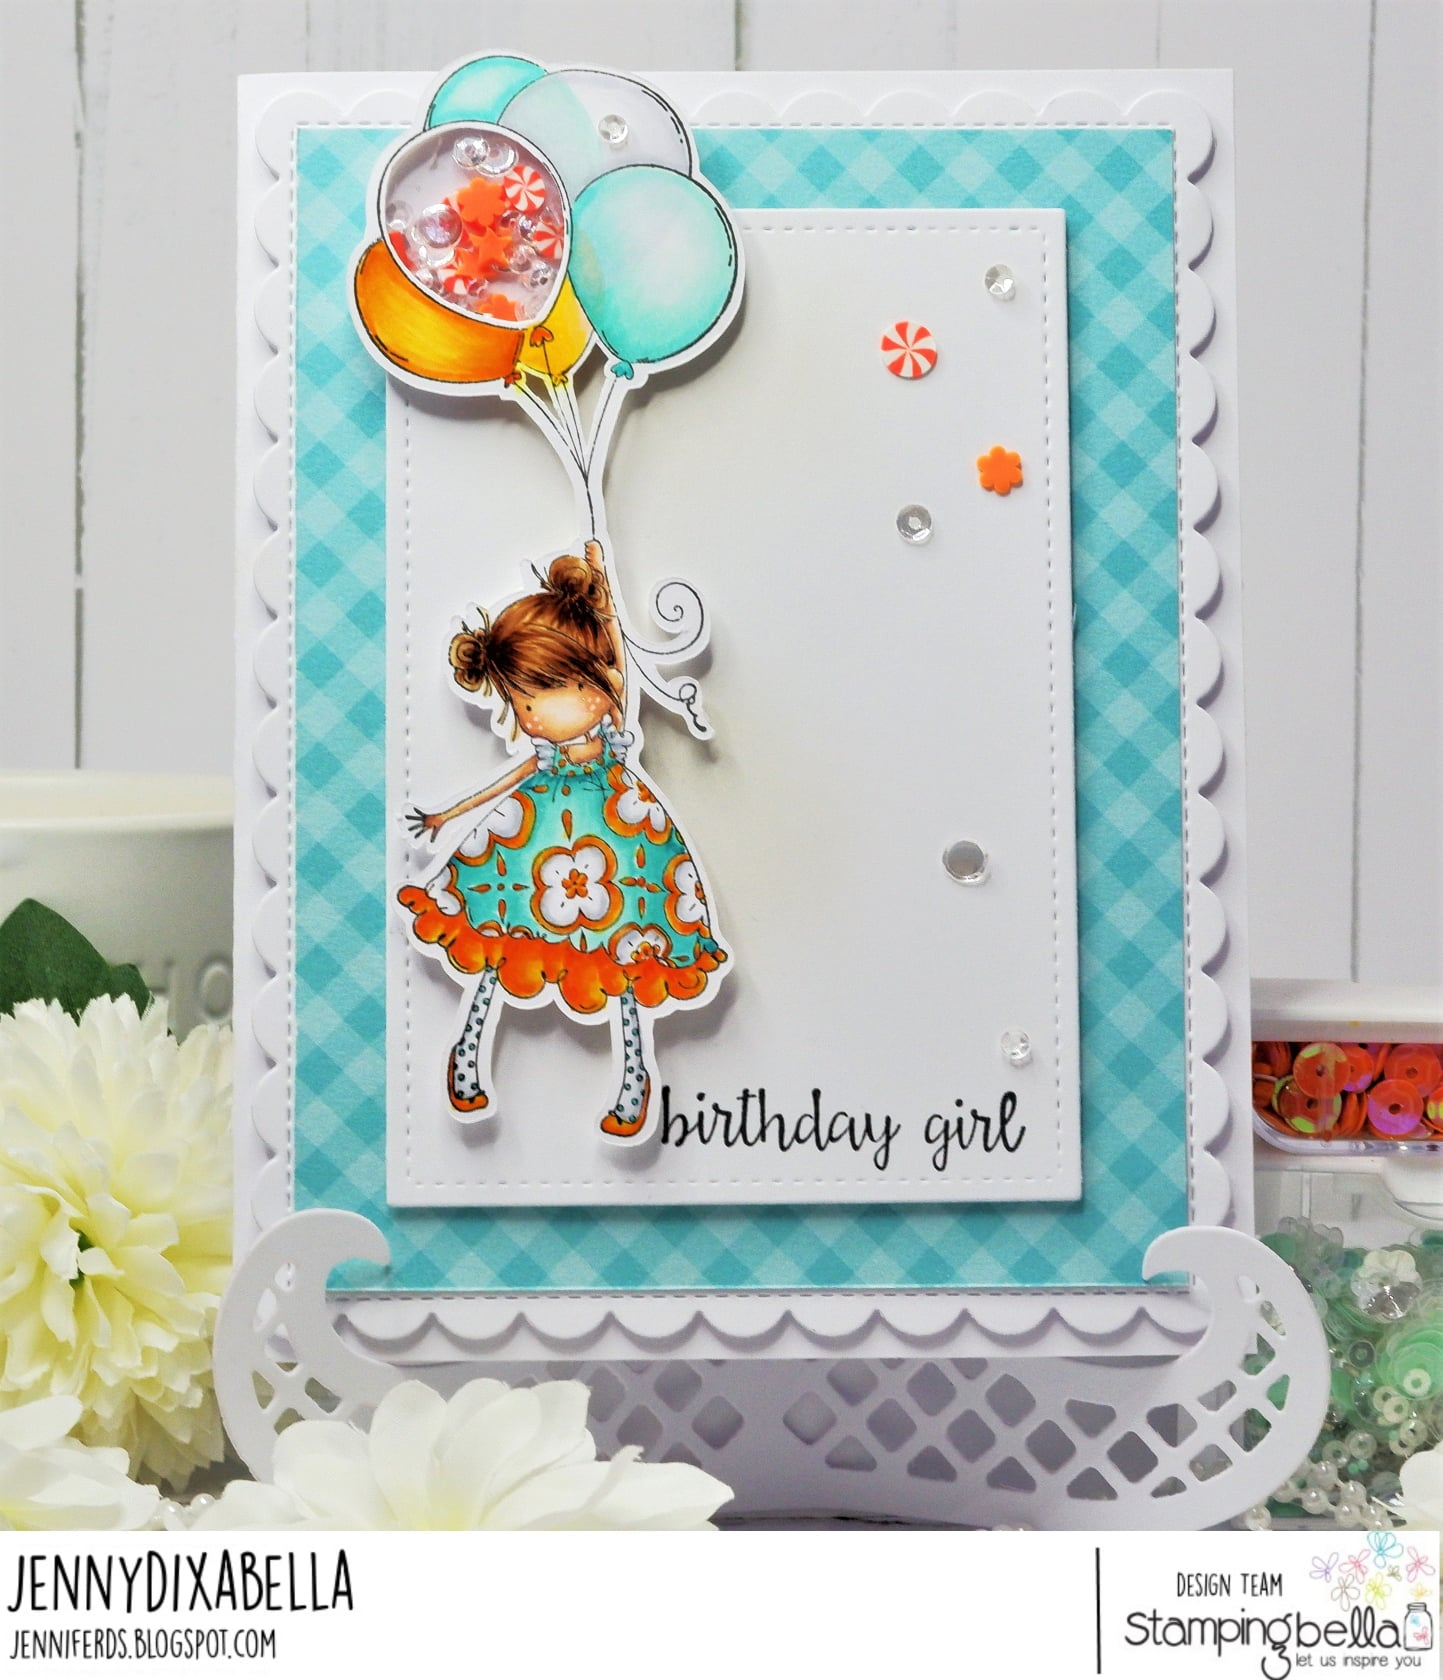 www.stampingbella.com: rubber stamp used TINY TOWNIE BLOSSOM card by JENNY DIX